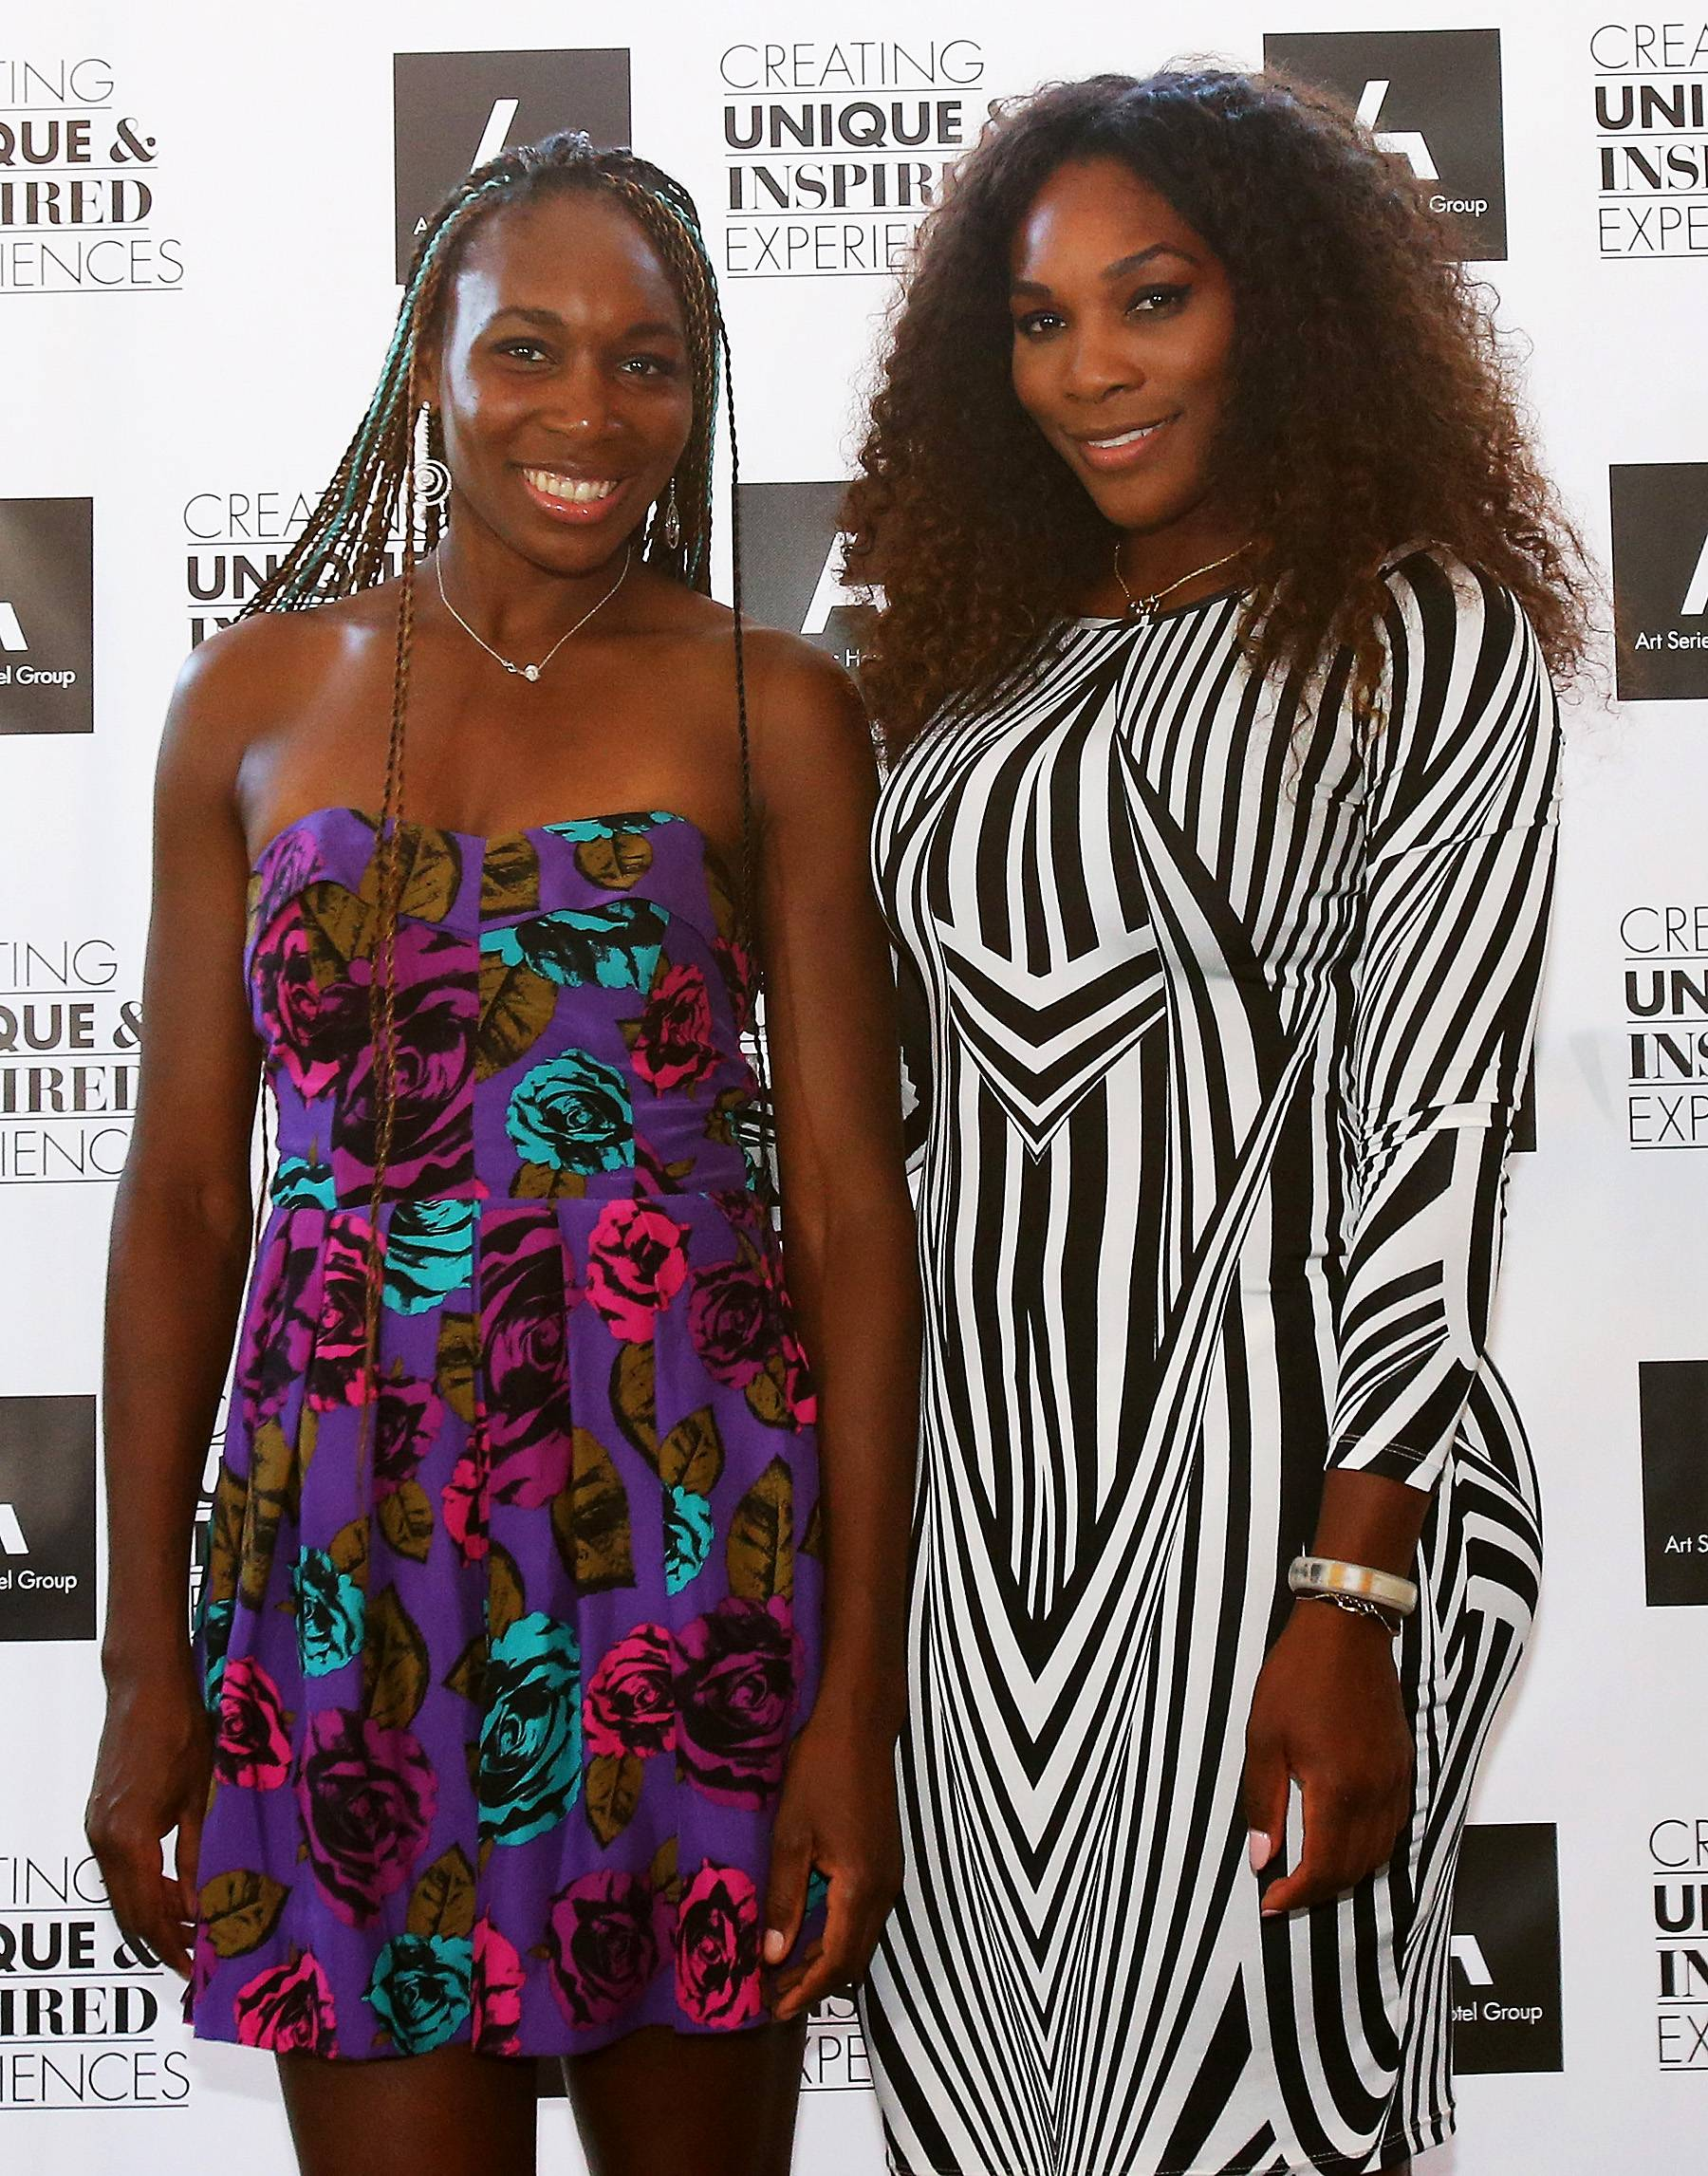 Venus & Serena Williams - Venus & Serena Williams have dominated the sport of tennis since their early teens and have only gotten better with time. Over a year ago both sisters were faced with potentially career-ending injuries and illnesses, but they're back and stronger than ever.  (Photo: Scott Barbour/Getty Images)